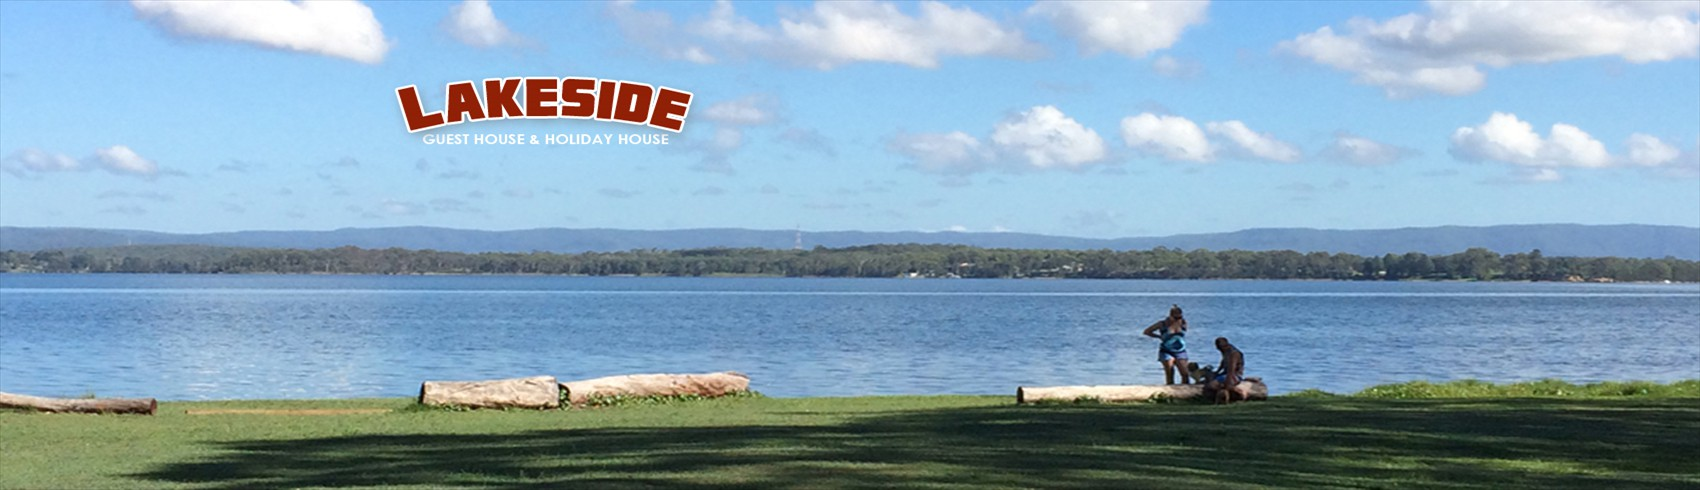 Uninterupted Water Views at The Lakeside Guesthouse & Holiday House - Lake Macquarie